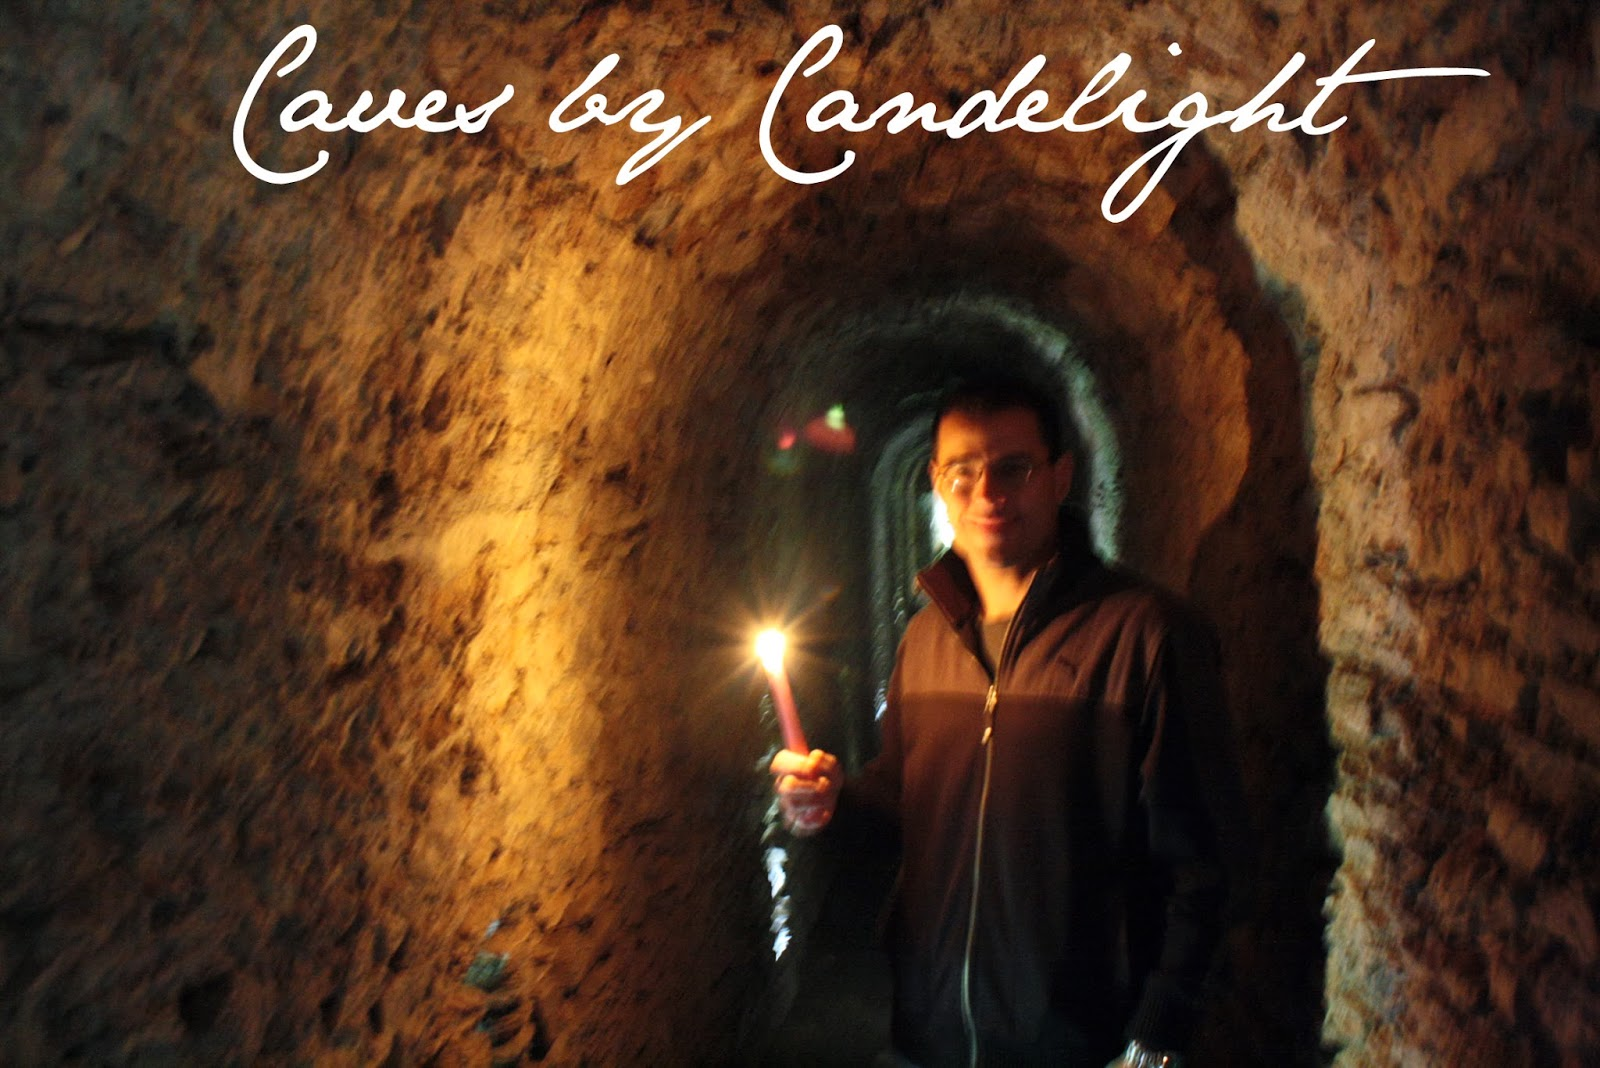 Exploring Castle Rheinfels by candlelight - The Tipsy Terrier blog